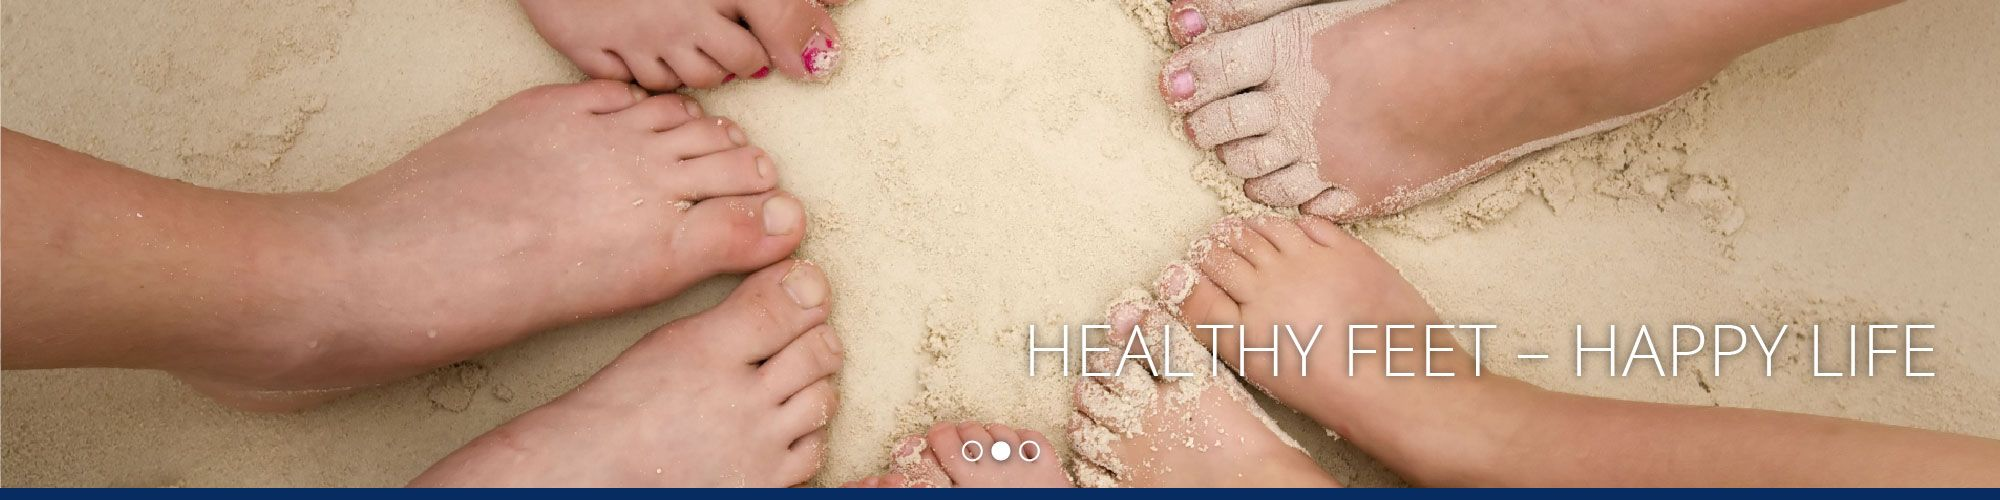 Healthy Feet – Happy Life | feet in sand